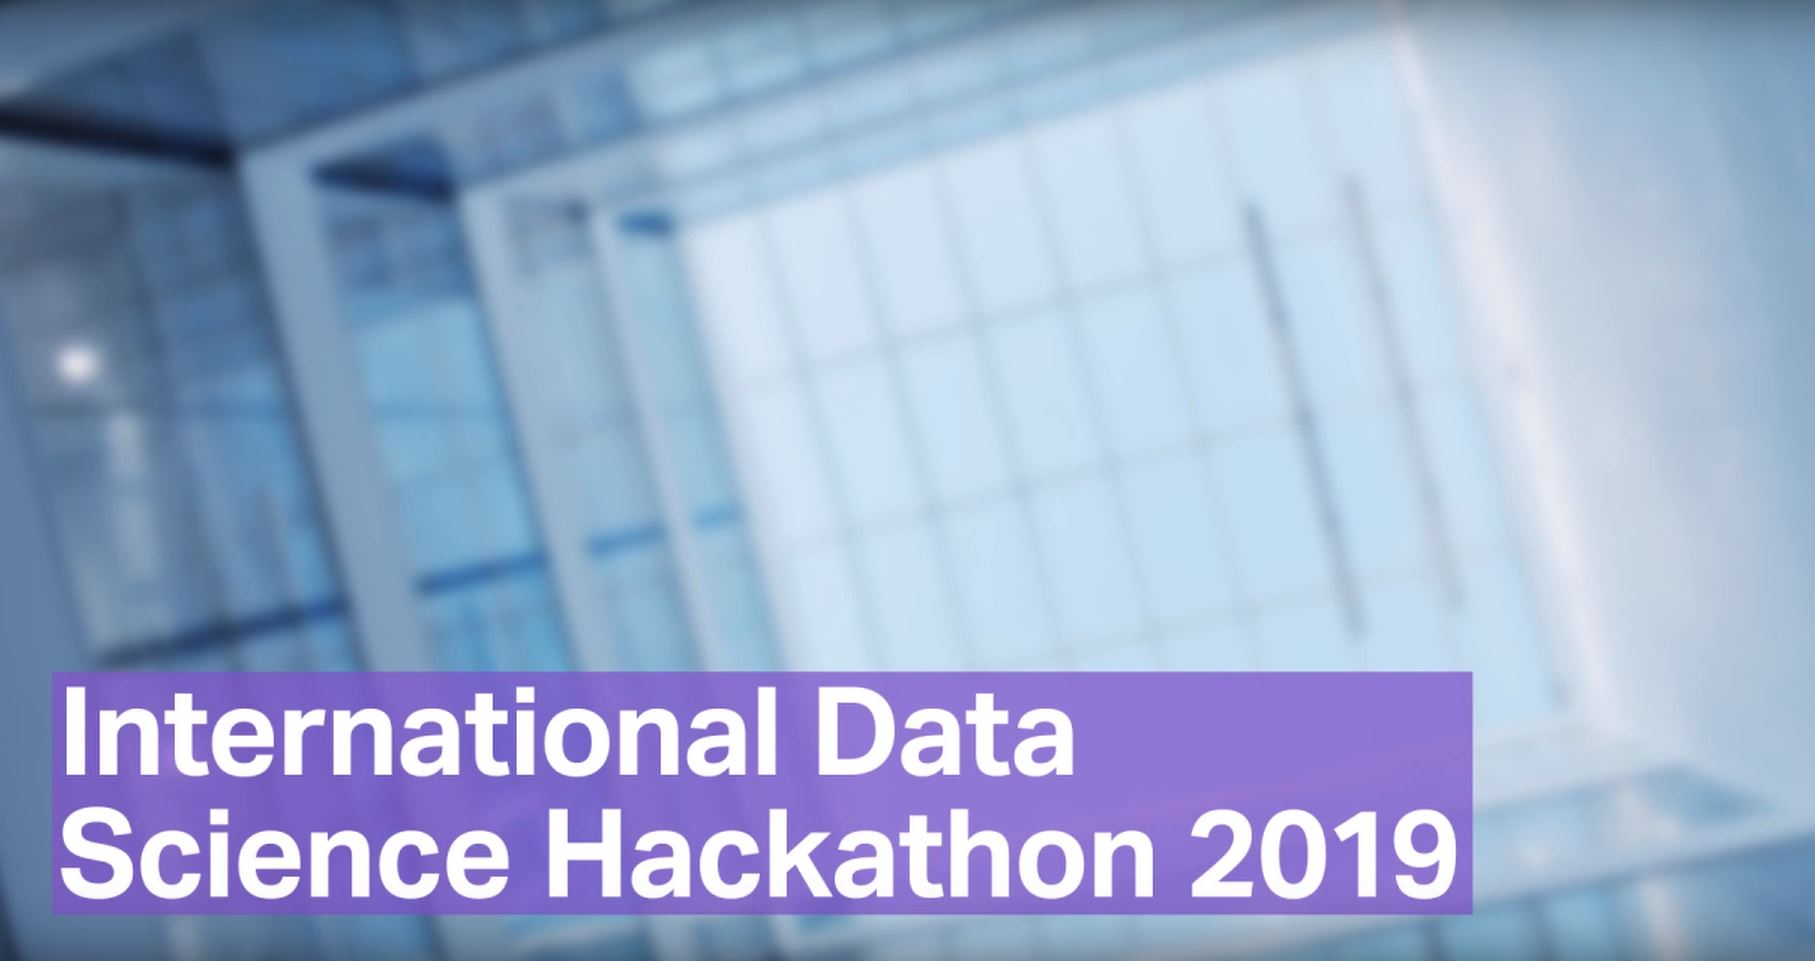 Preview Image for the video about the international data science hackathon by Covestro.